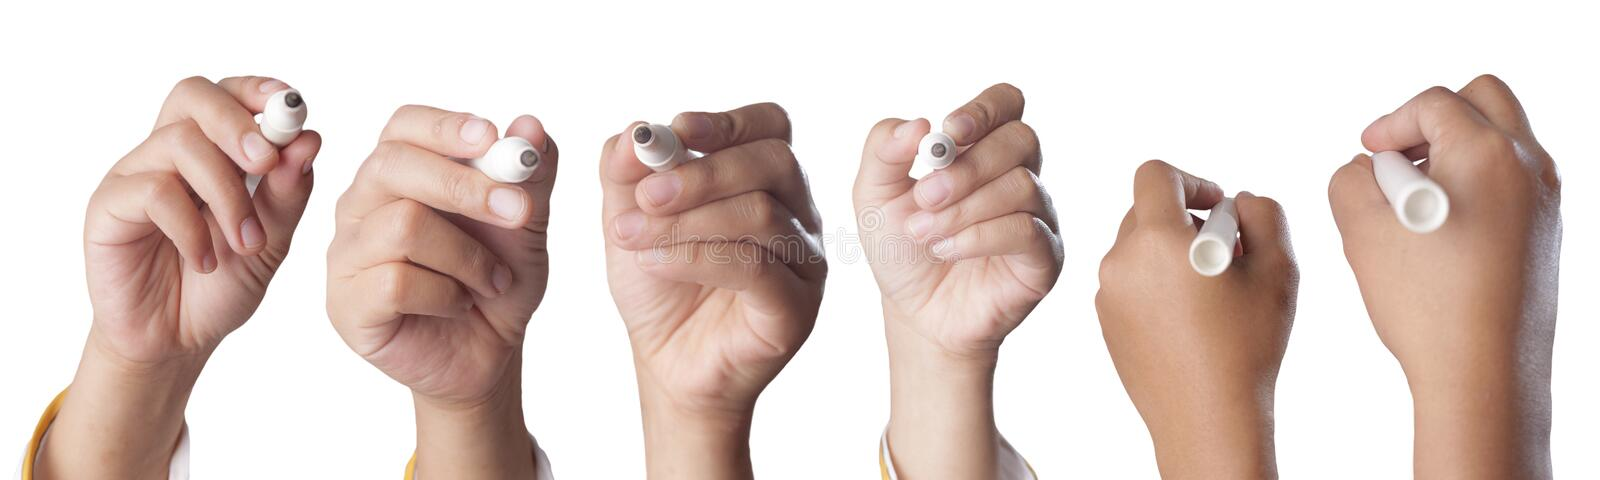 Set of Hands Holding Marker in Writing Position. Close up image set of woman& x27;s hand holding marker in writing position, isolated on white collection various stock image